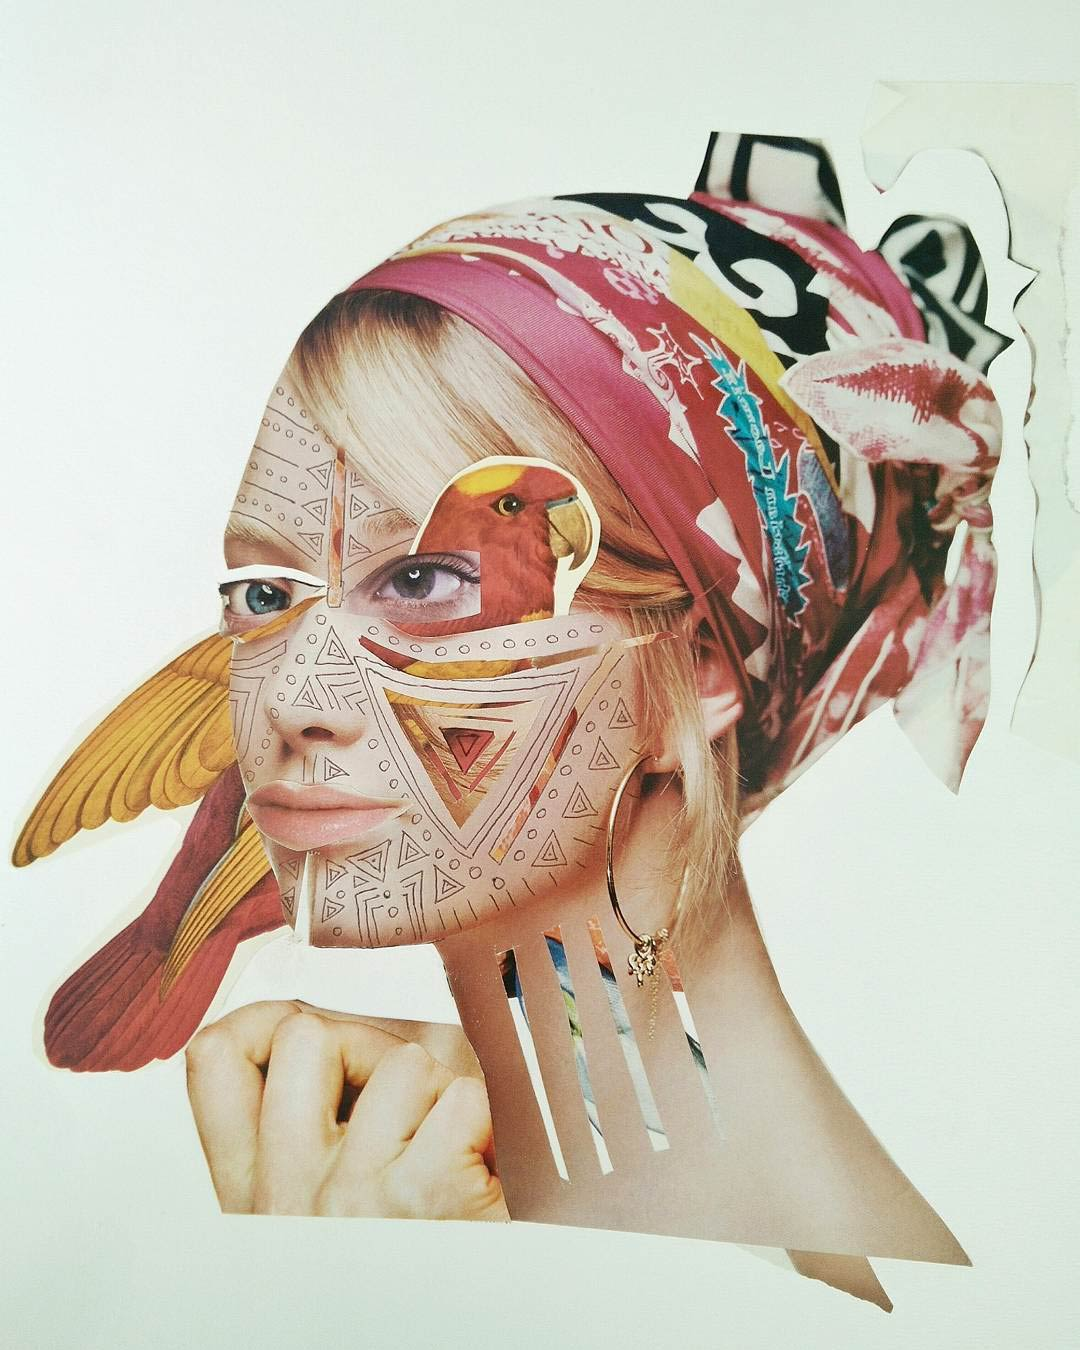 veerle-symoens-mixed-media-collages-2